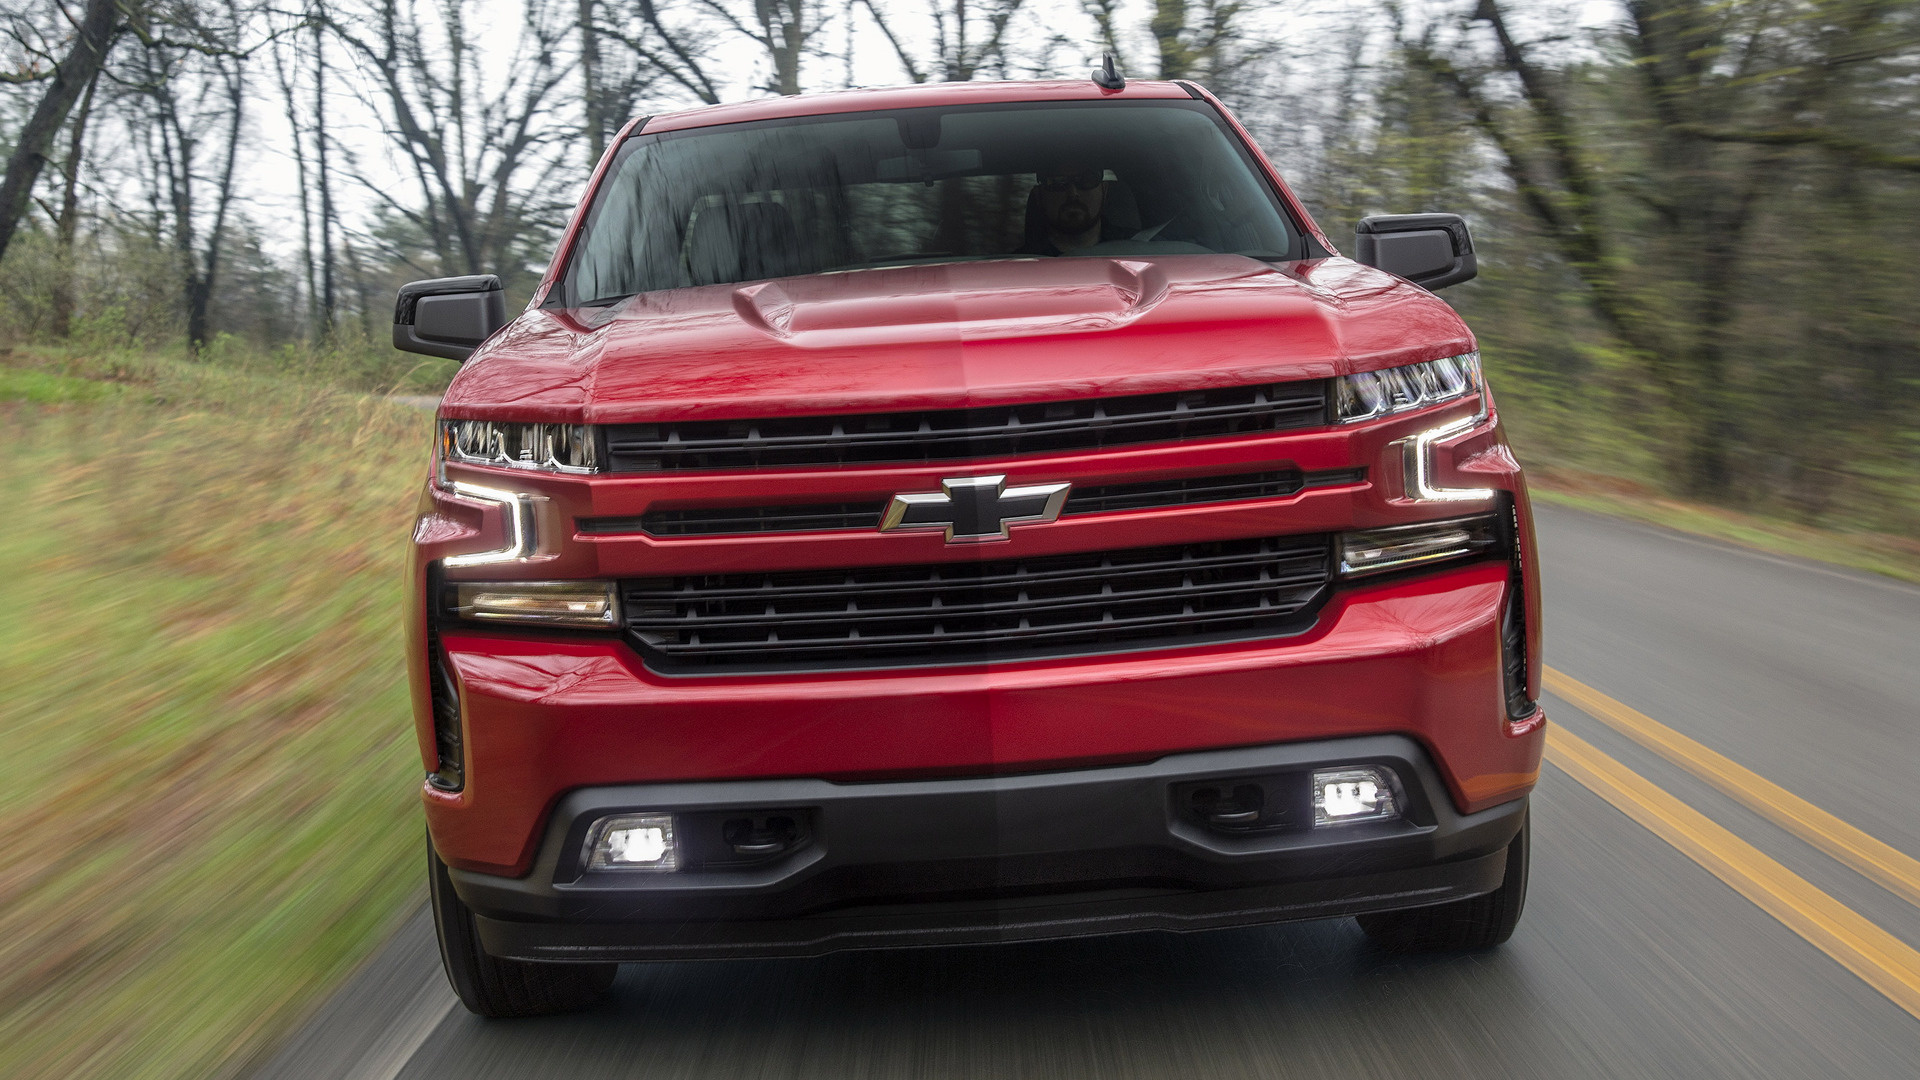 2019 Chevrolet Silverado RST Crew Cab - Wallpapers and HD ...